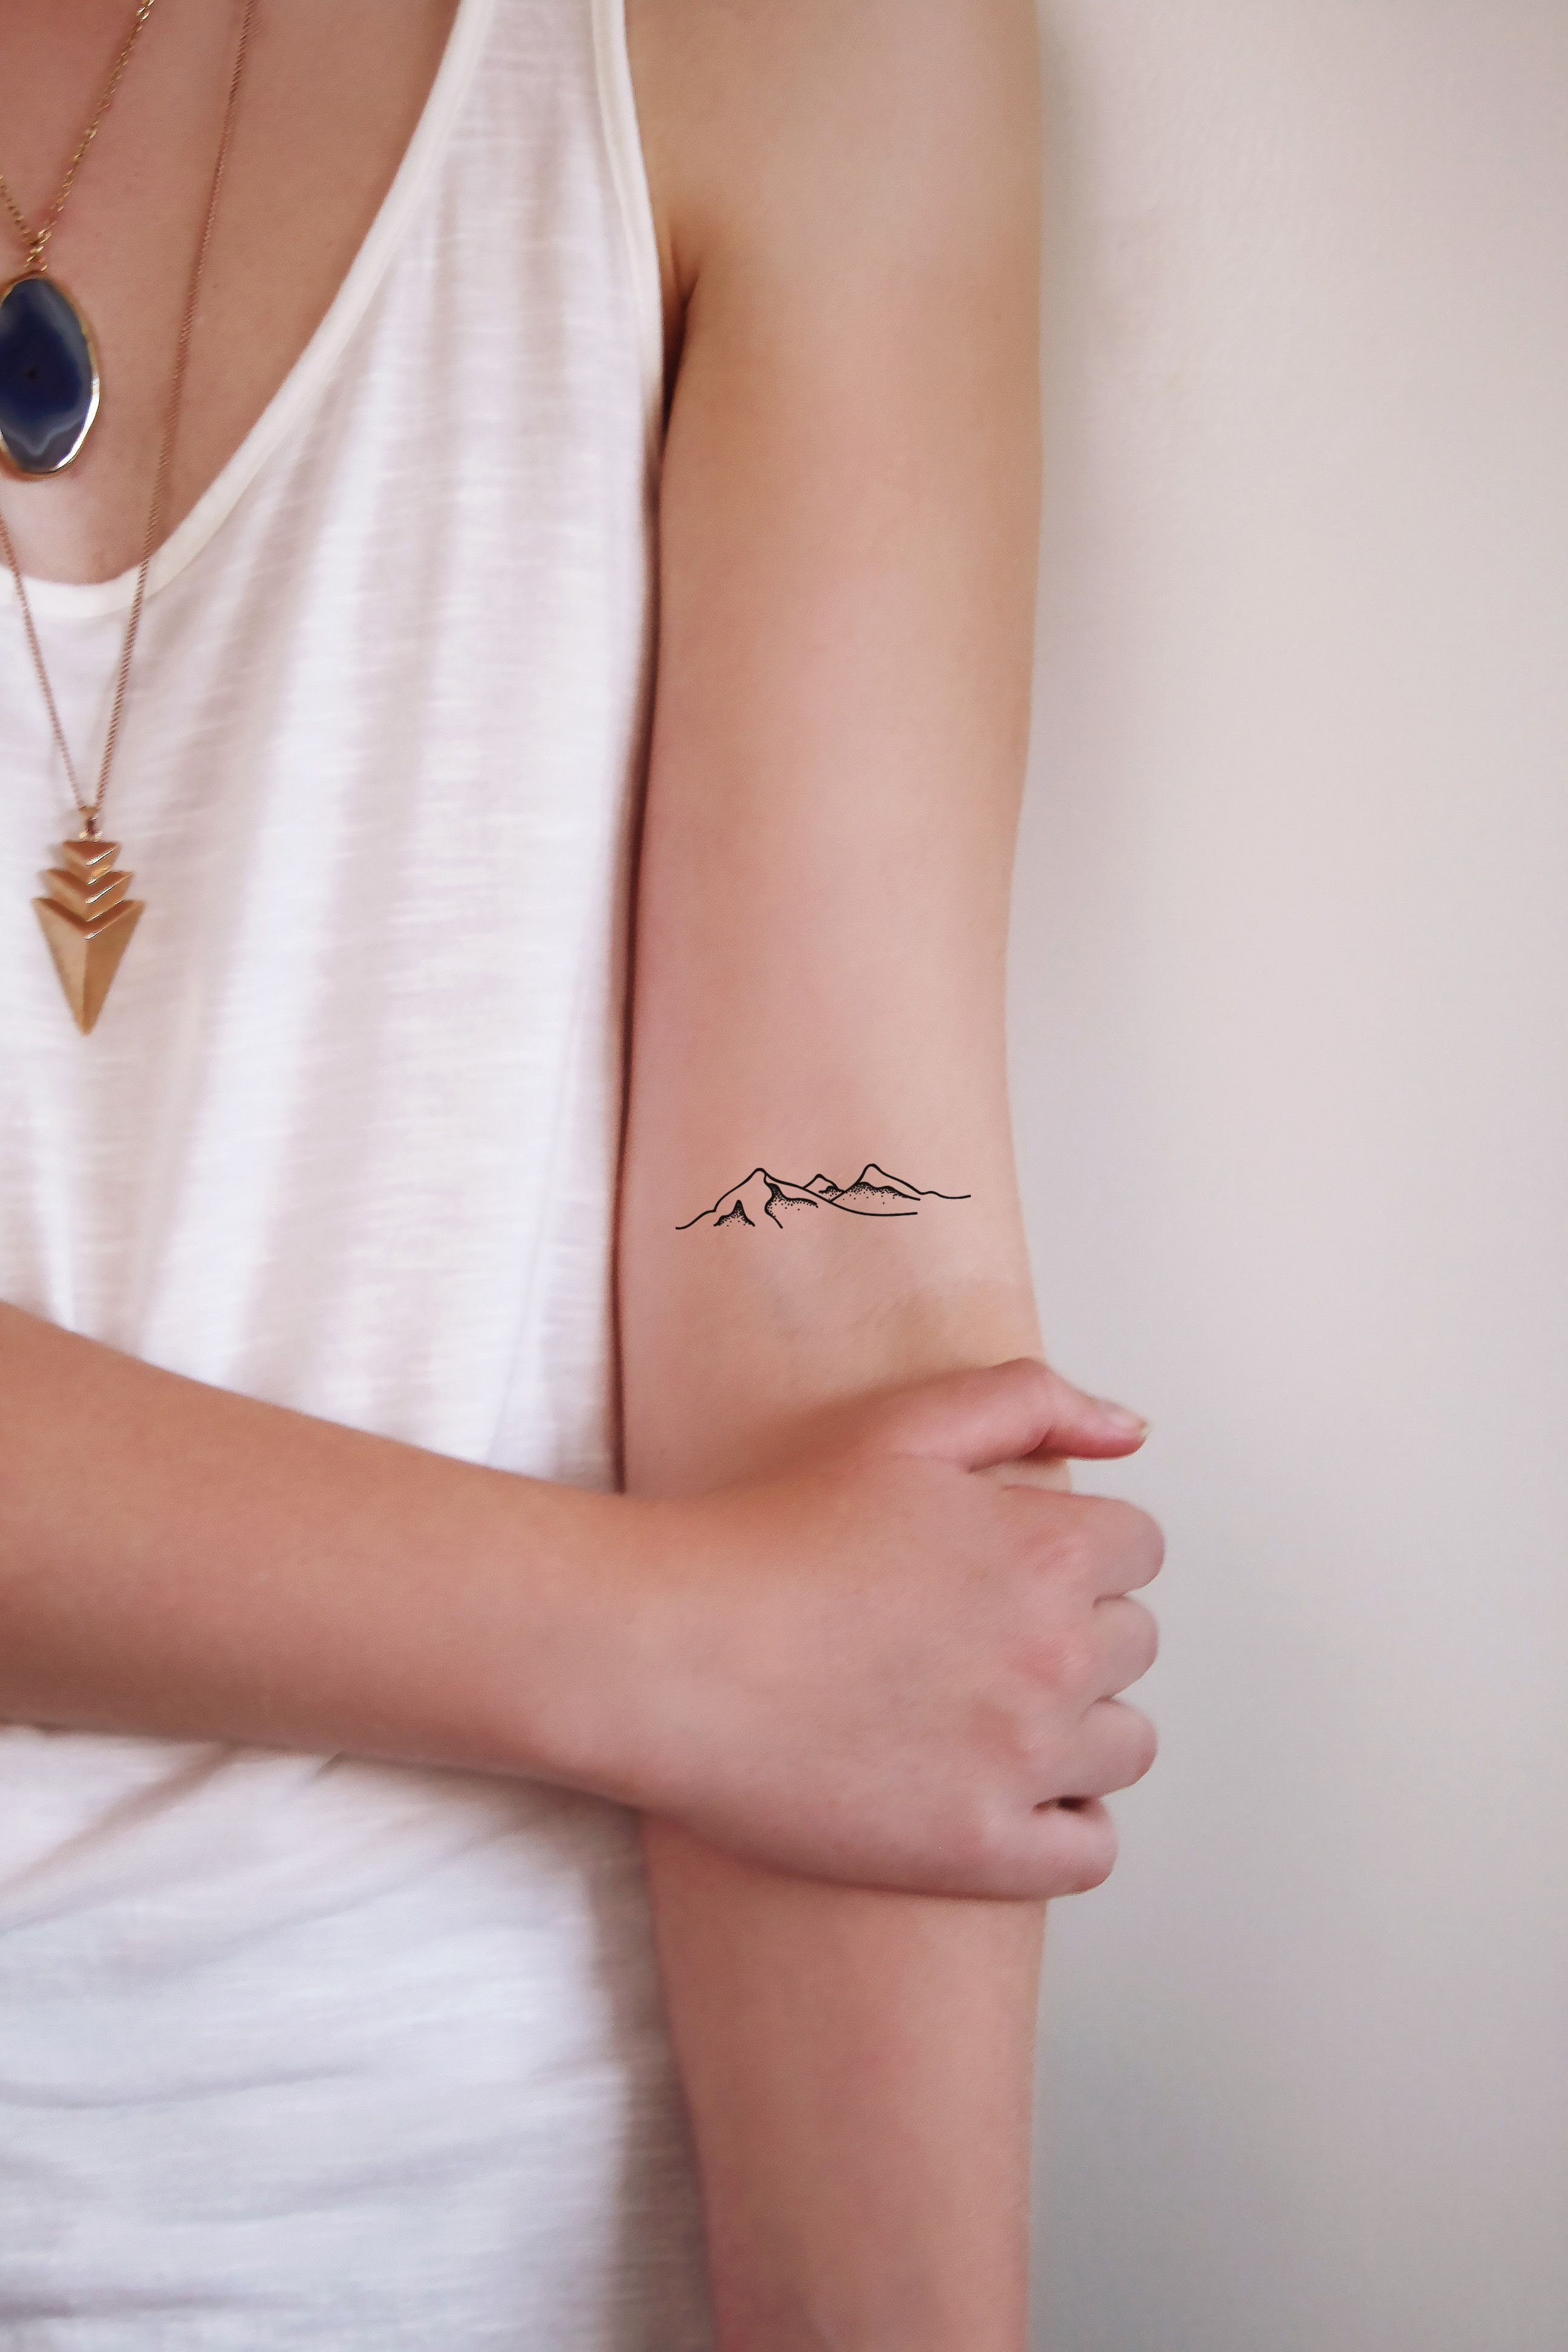 Small tattoo ideas for men on neck a perfect little mountain this would look great on your wrist or